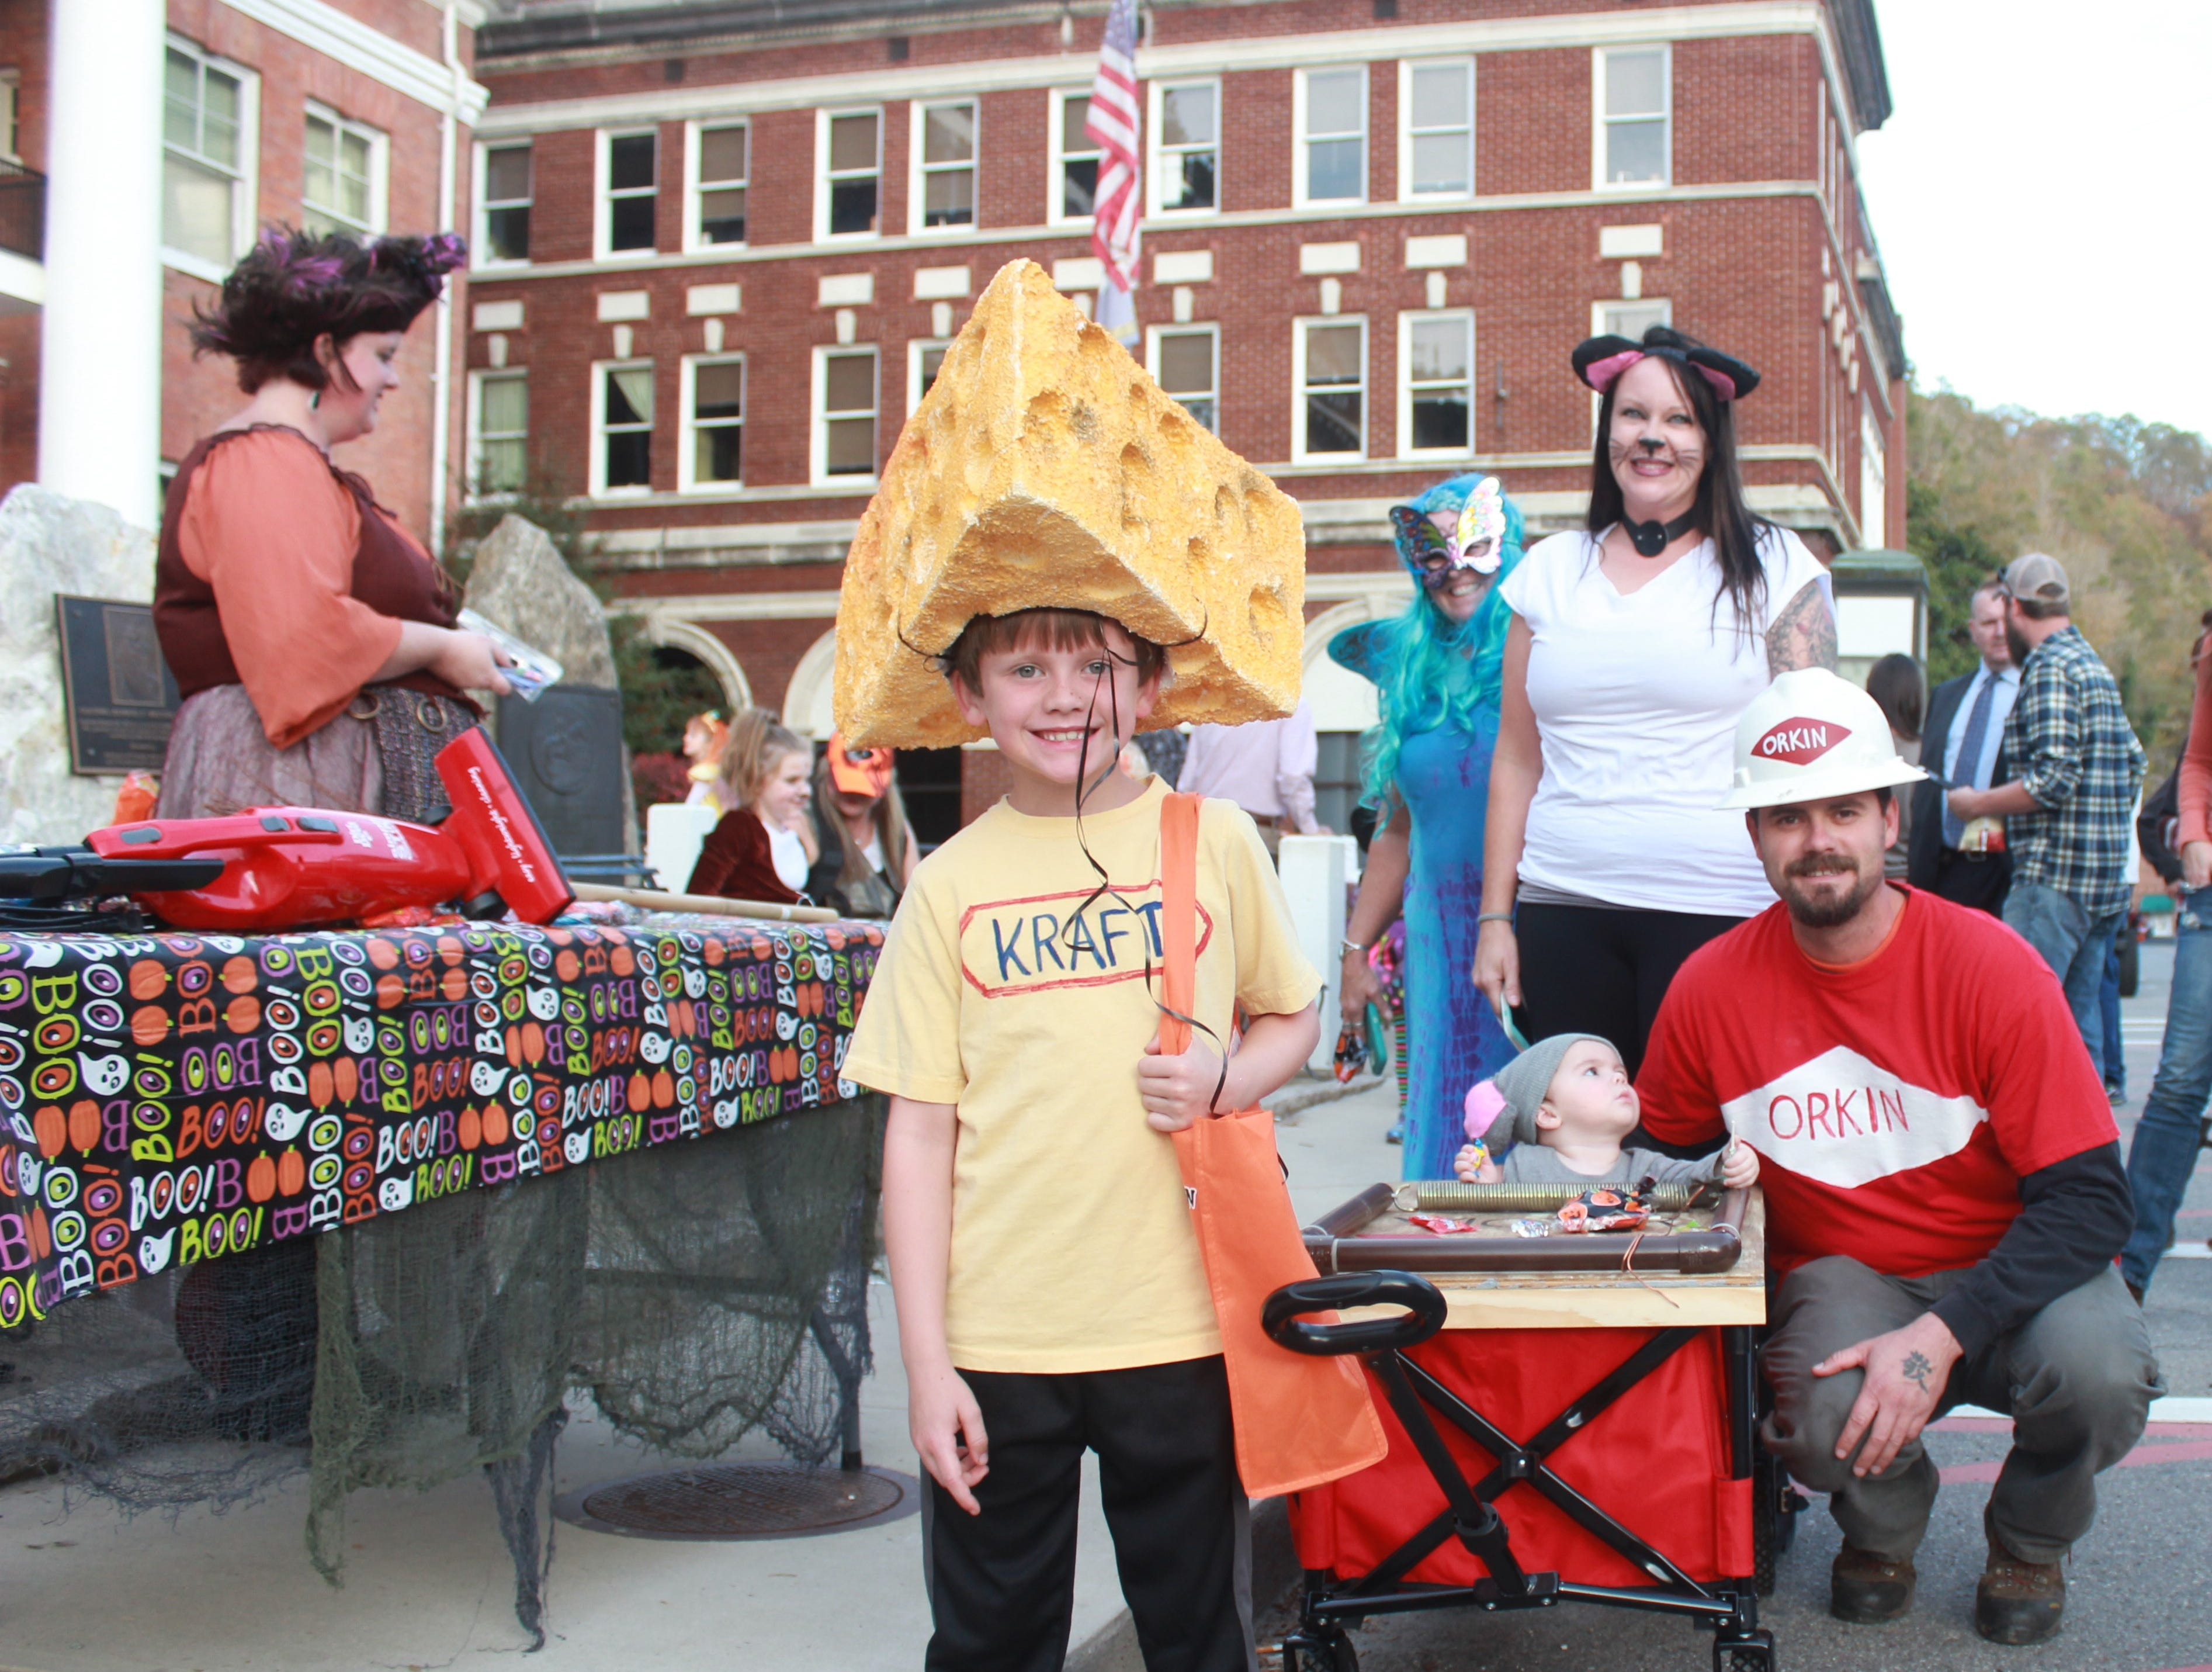 The Naillon family - Walter, Lela, Hudson and Zayden - won plaudits with their creative mouse trap family costume.